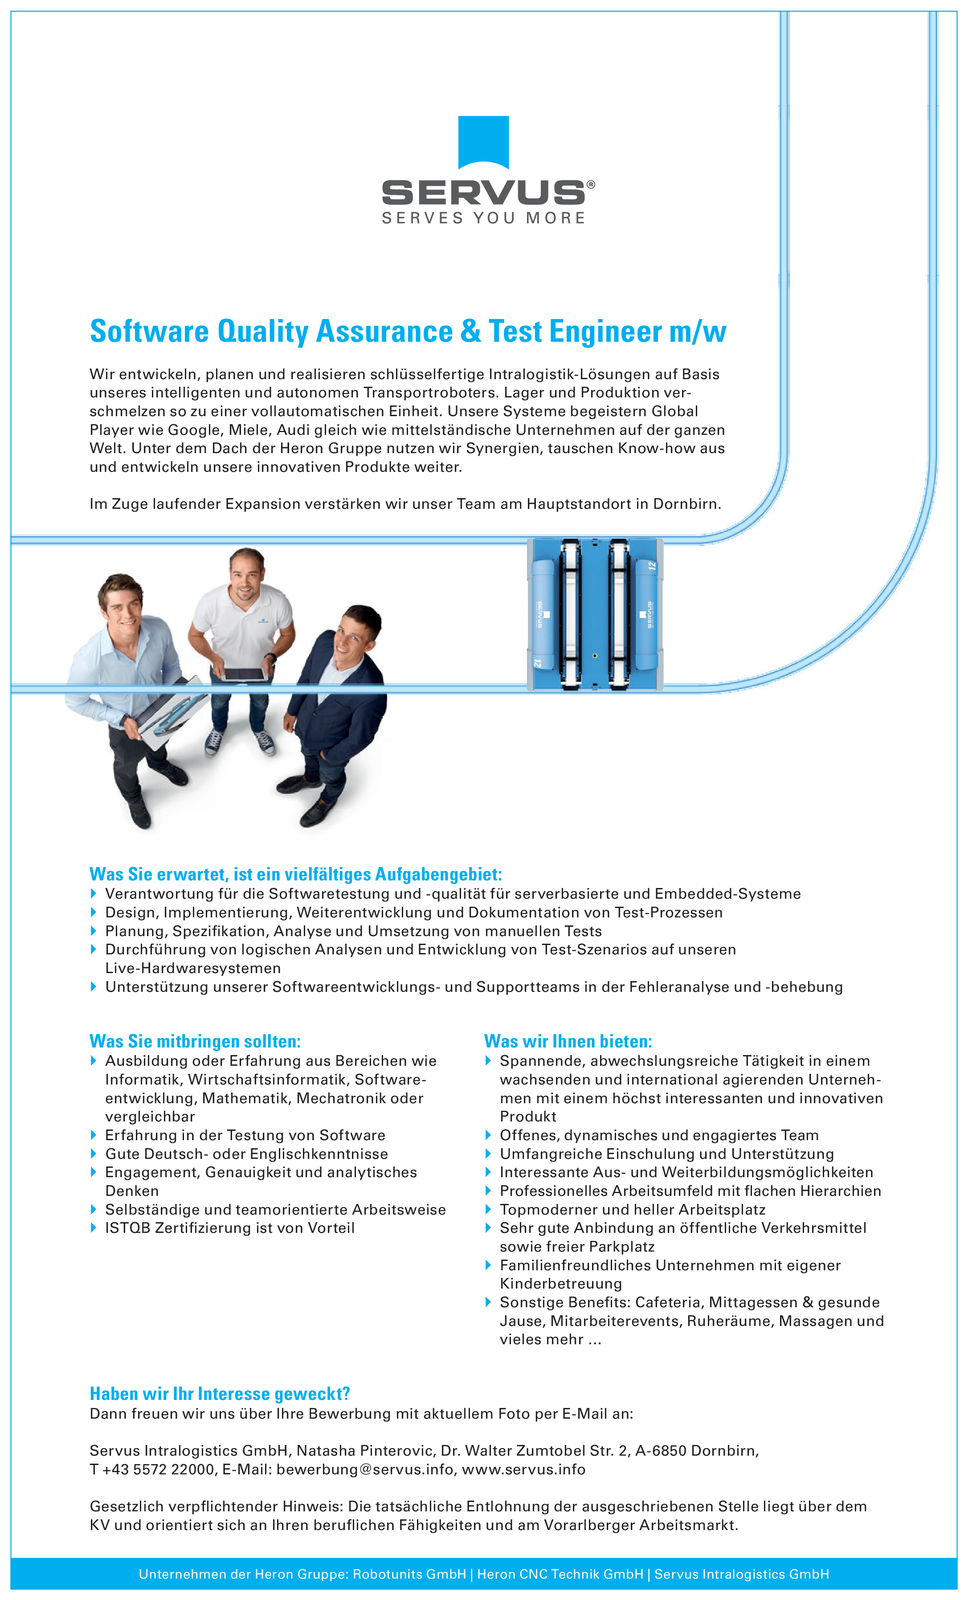 Software Quality Assurance & Test Engineer m/w